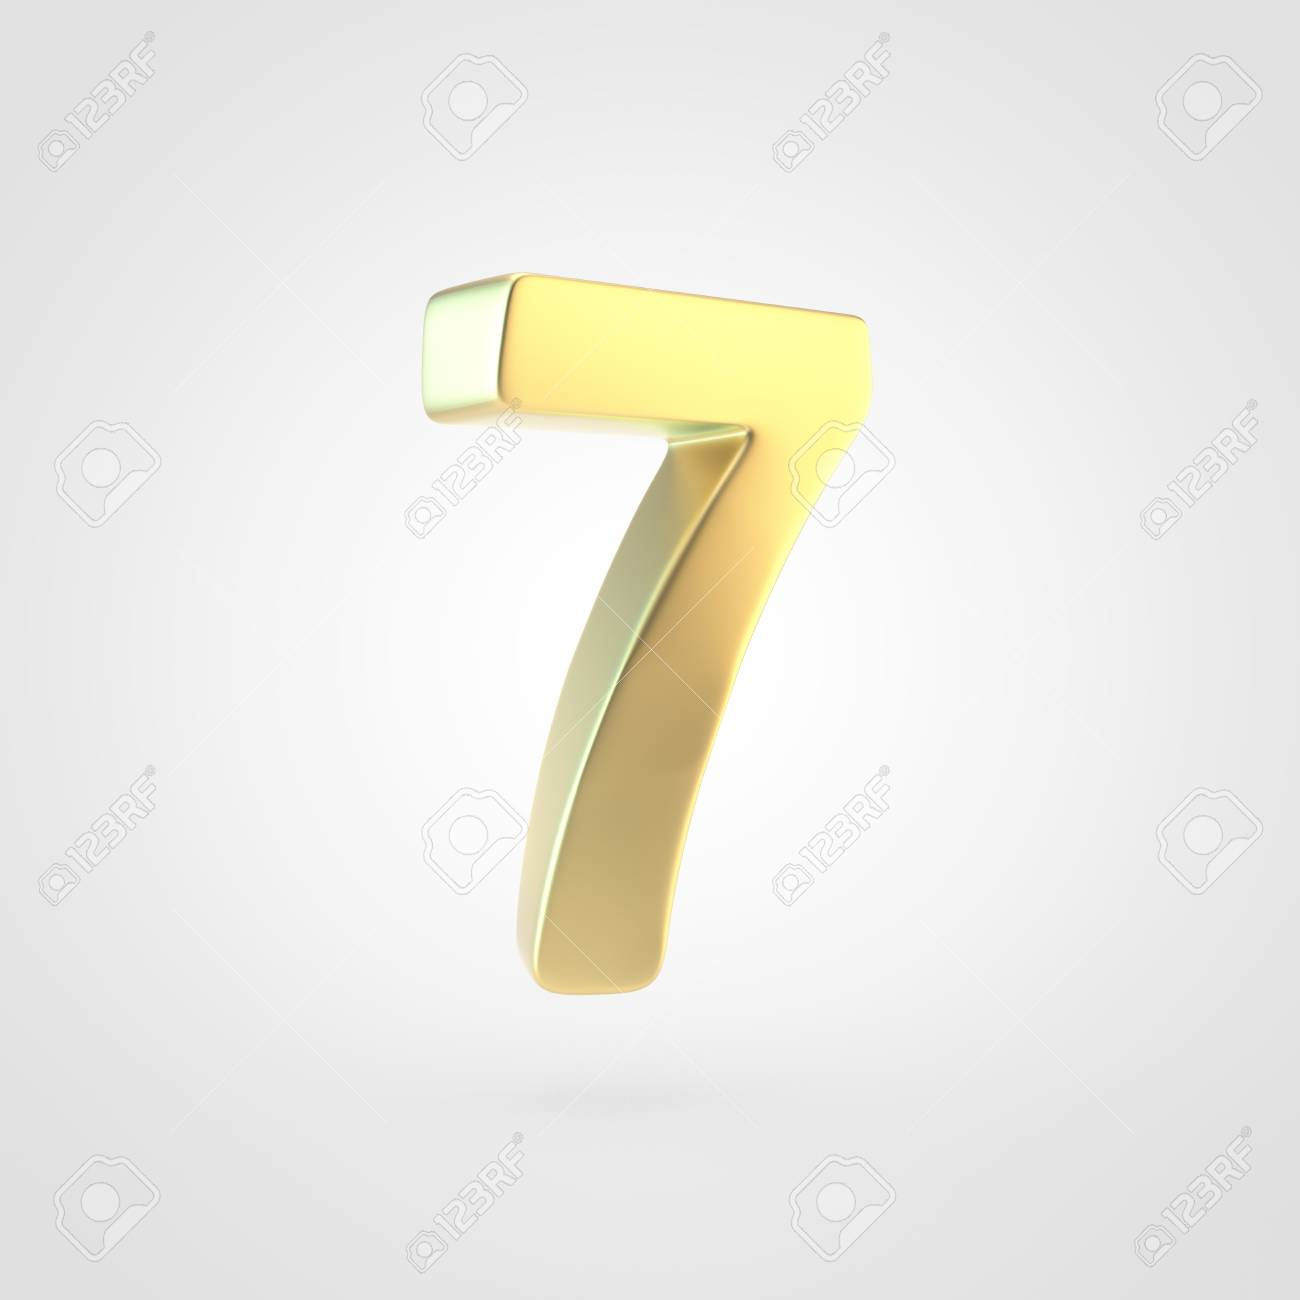 Golden Number 7 3D Rendering Of Matted Golden Font Isolated 1300x1300